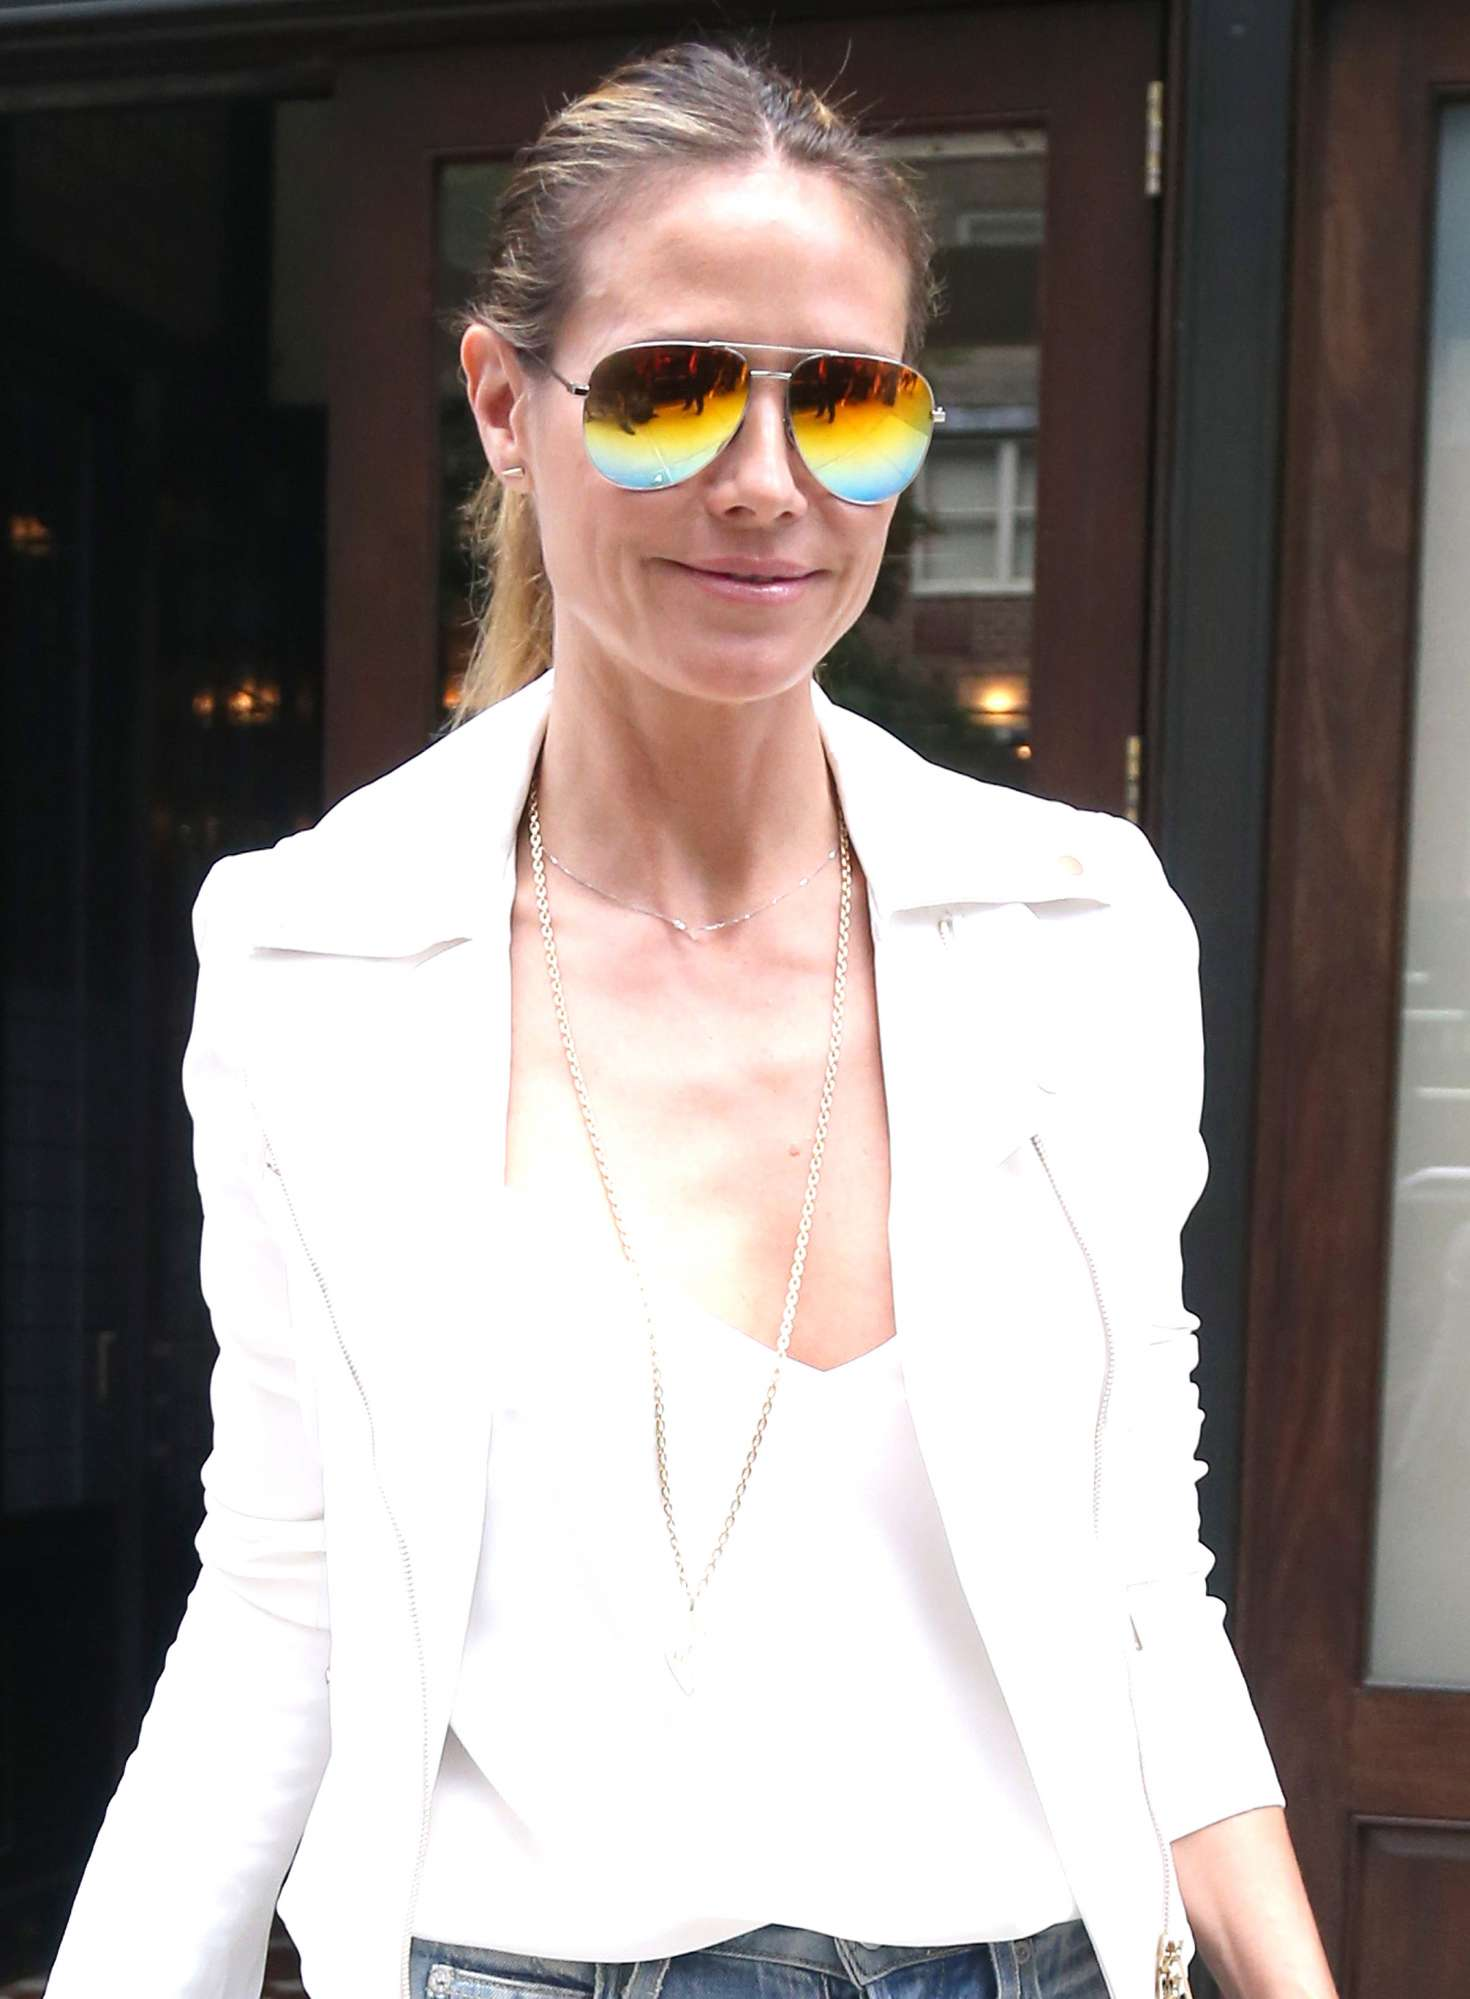 Heidi Klum 2017 : Heidi Klum Out and about in NY -09